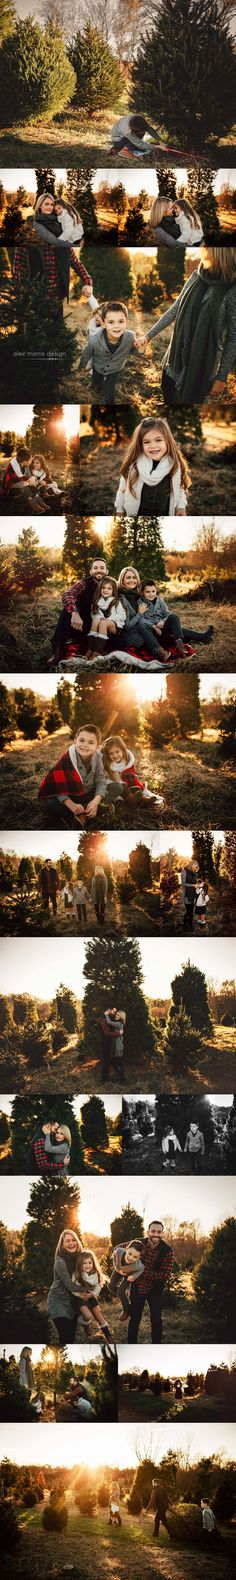 Indianapolis Family Photographer, outdoors, sunset, baby, portraits, alex morris design, outfits, portraits, photography, family photos, indiana, christmas tree farm